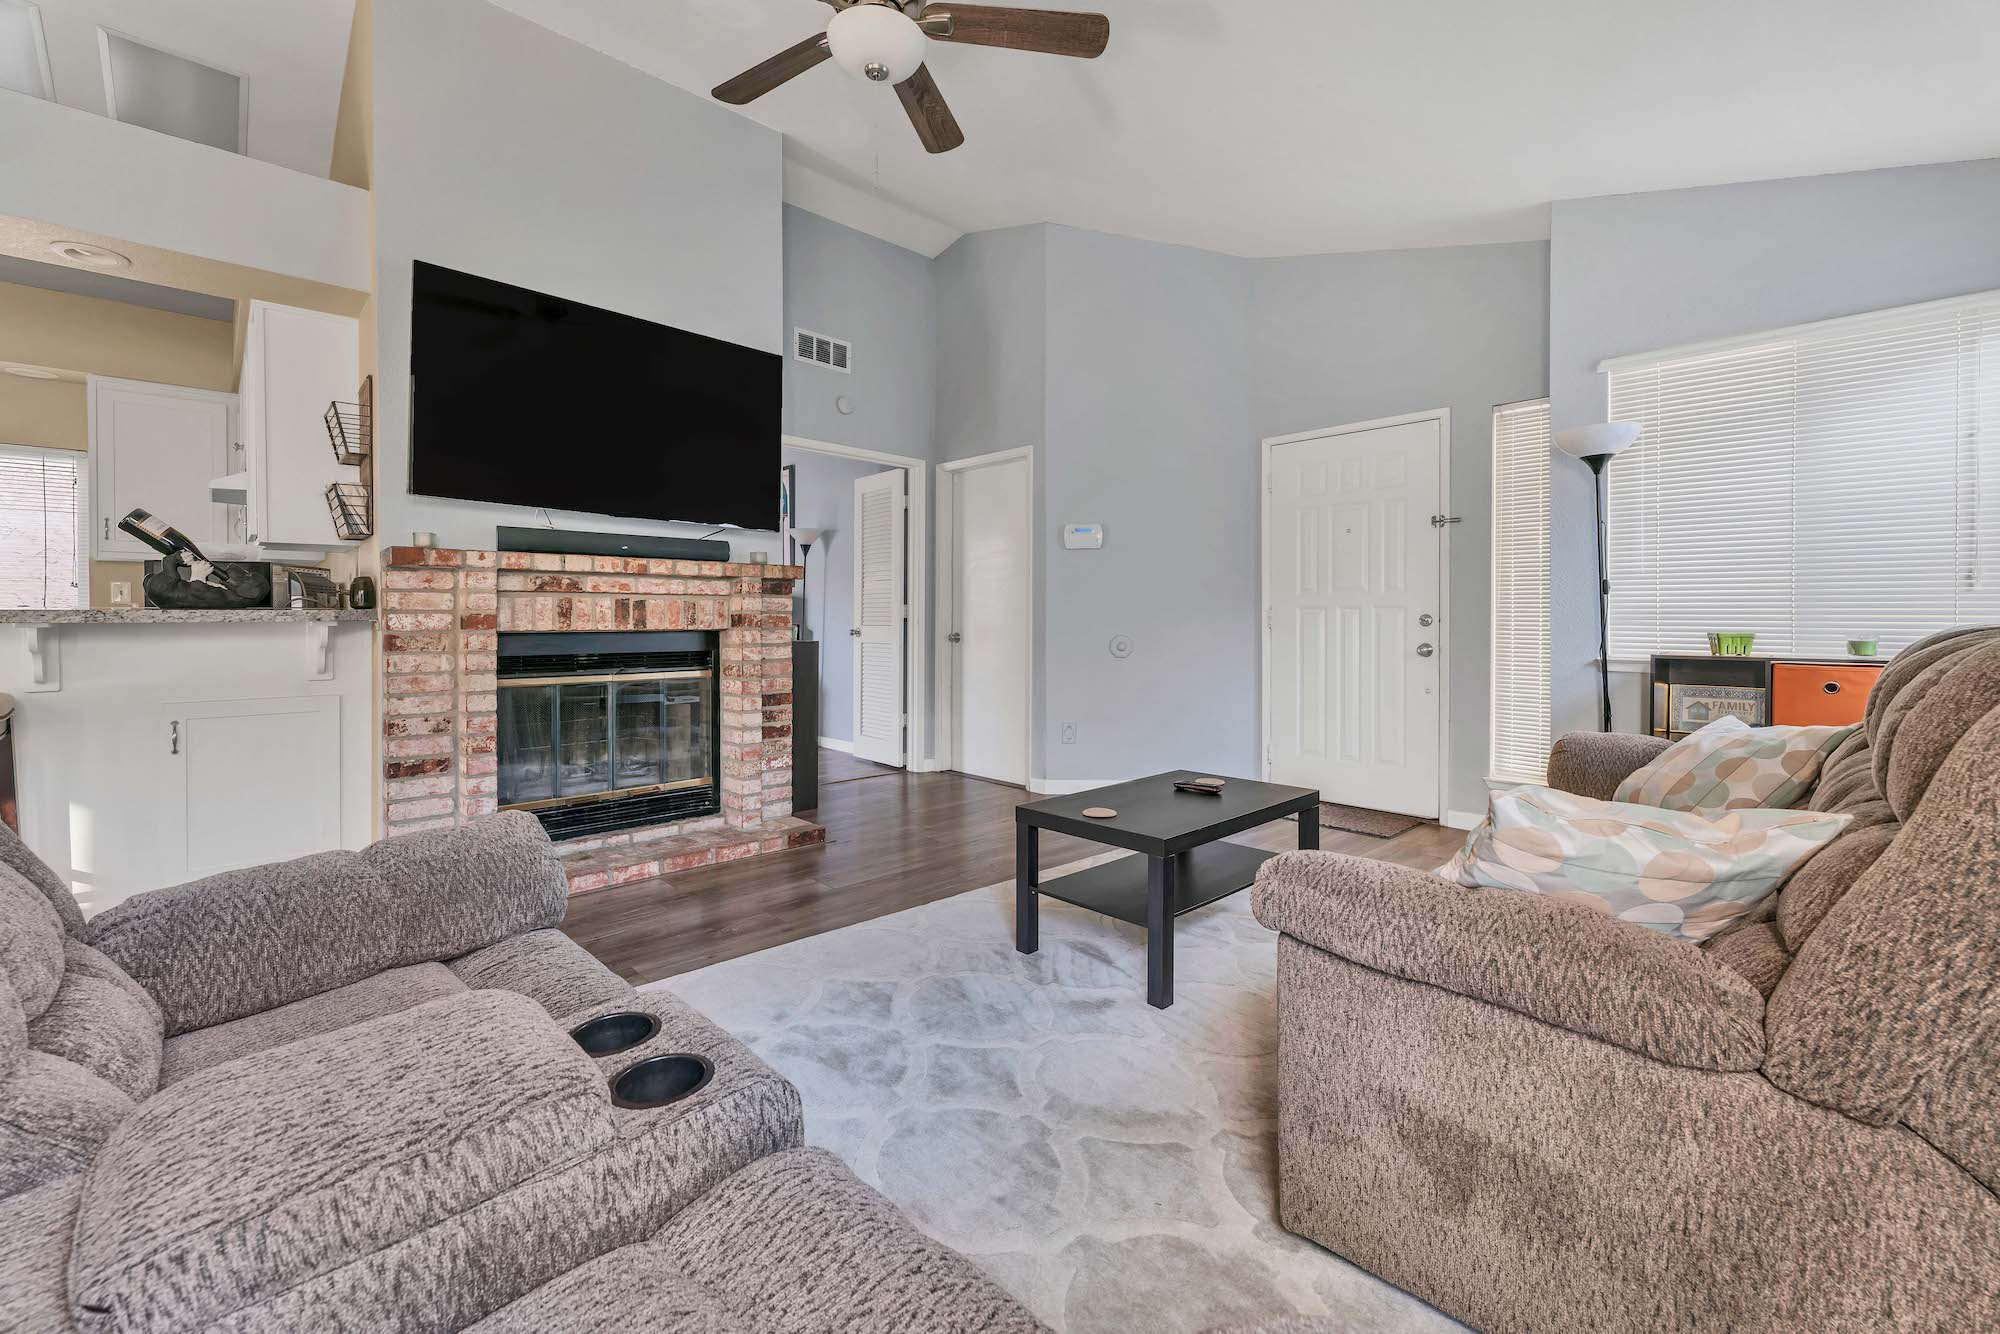 Living room of the home at 7121 Heather Tree Dr, Sacramento Ca